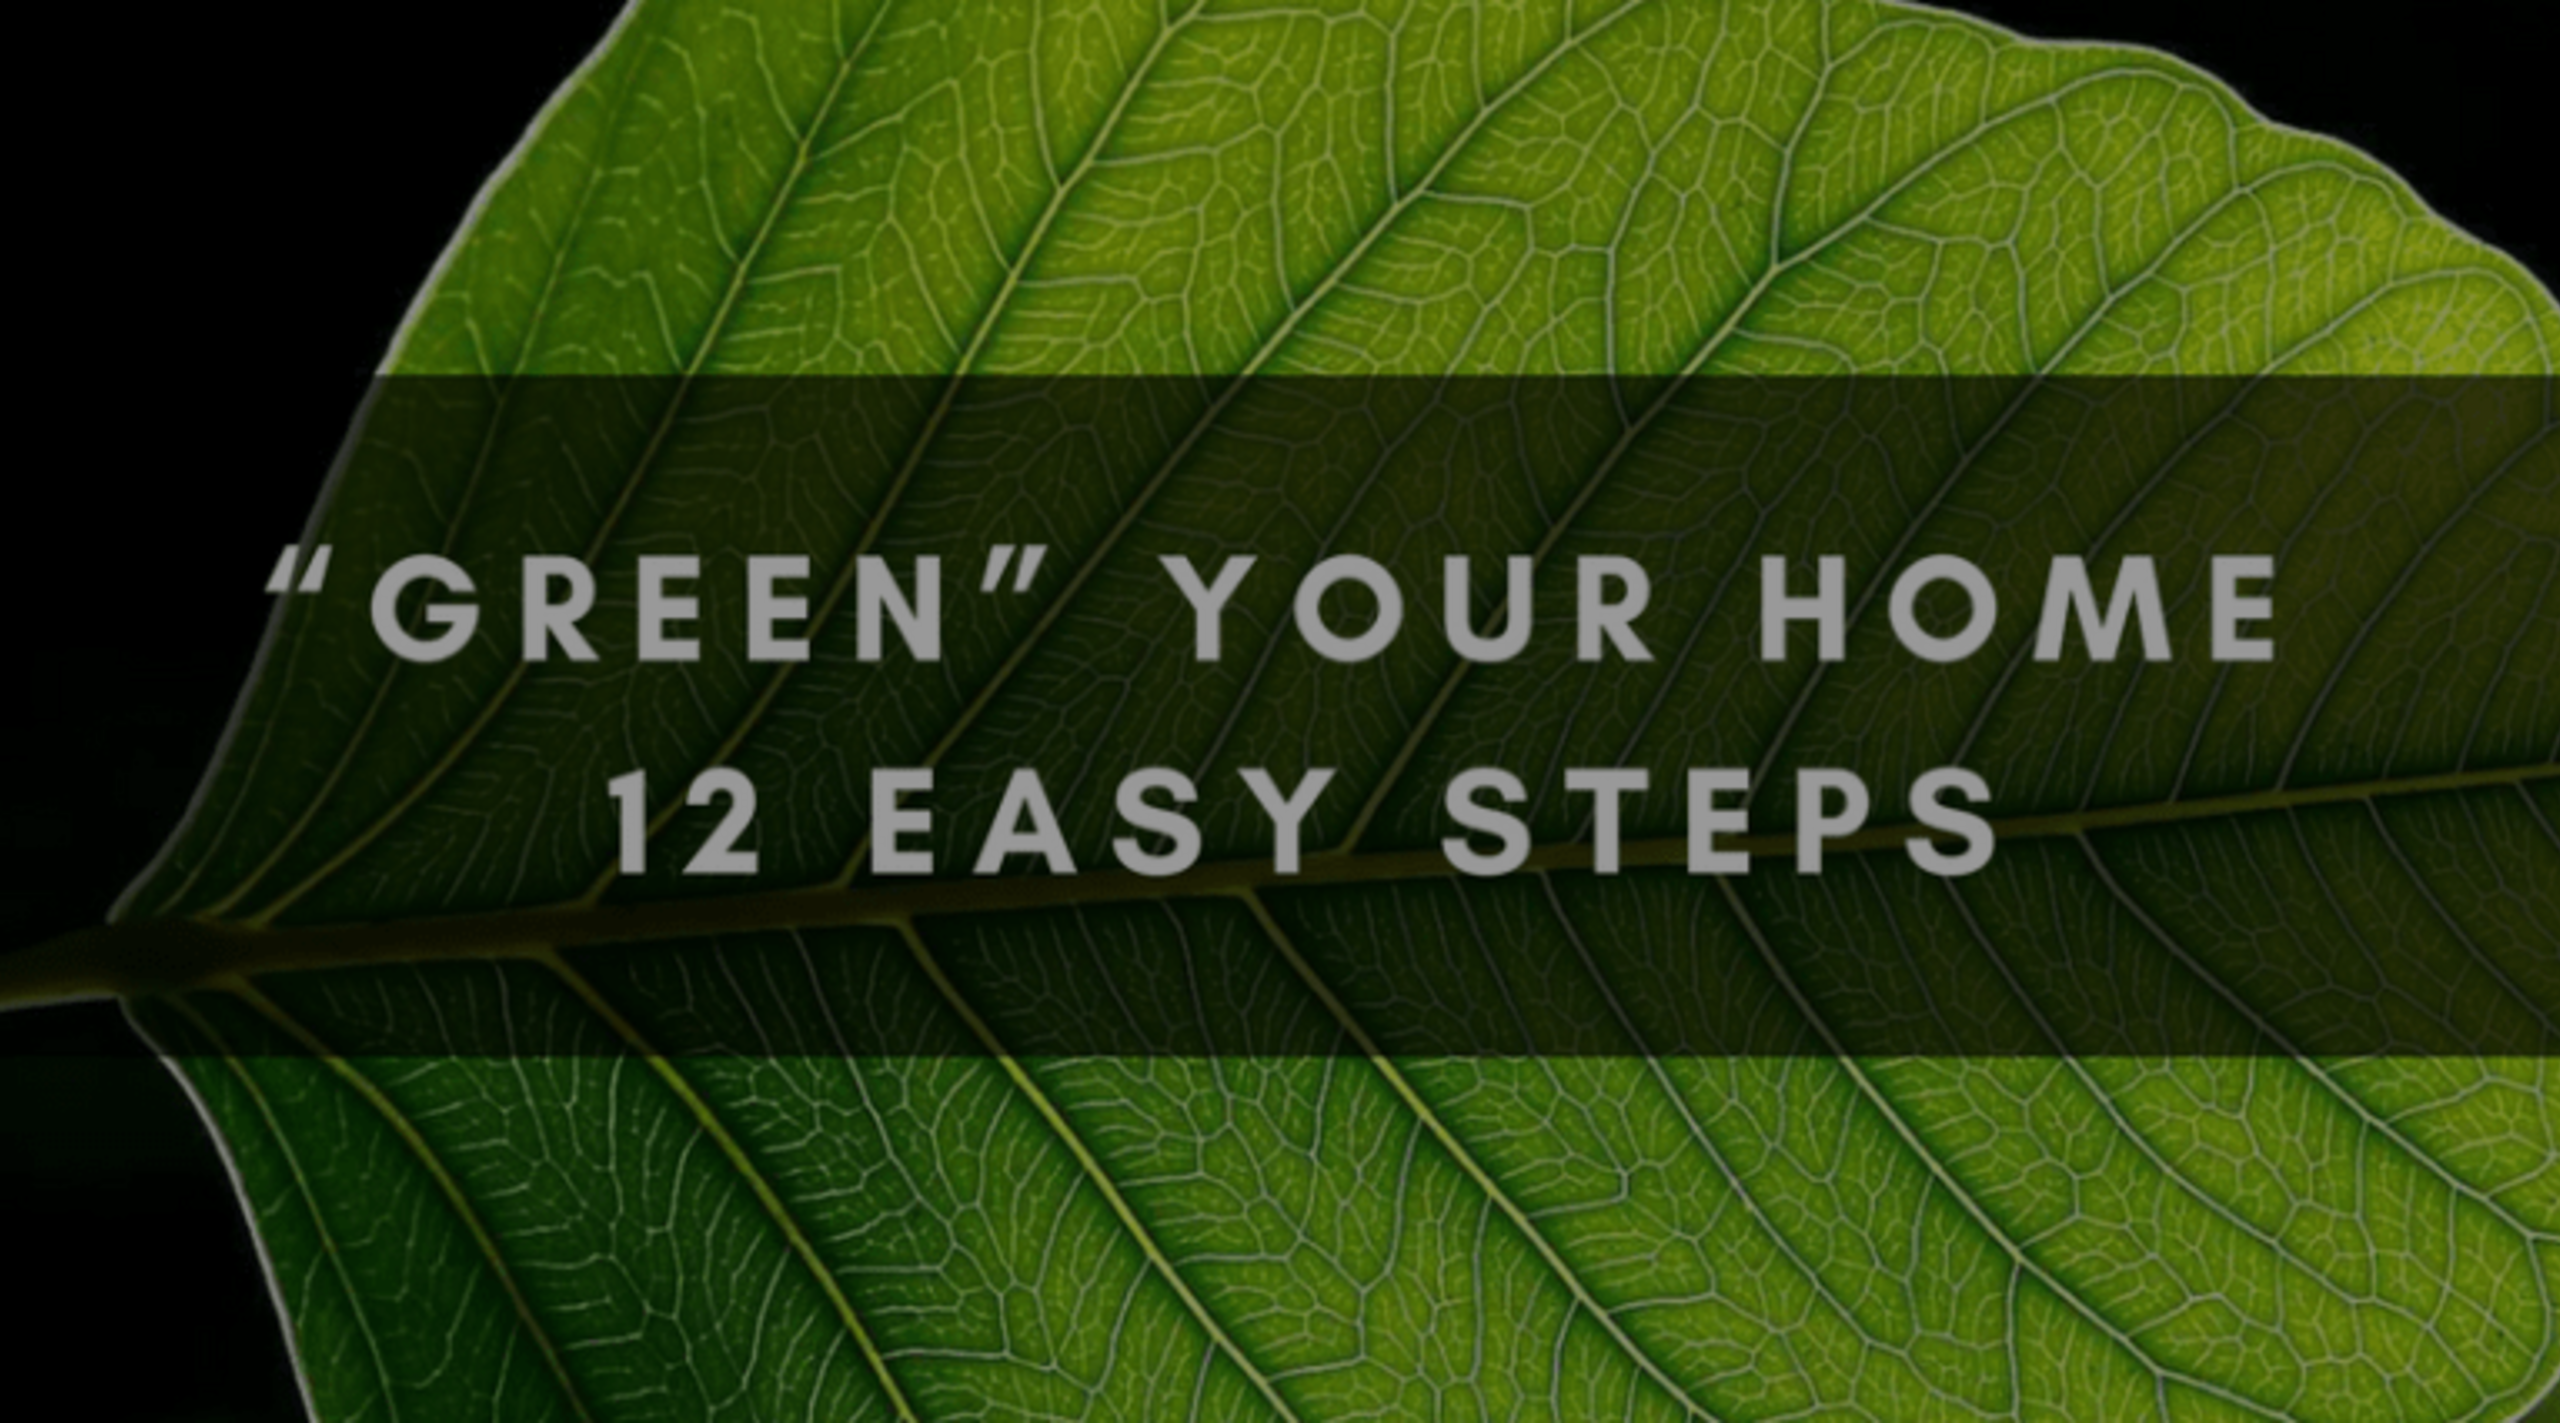 """""""GREEN"""" YOUR HOME 